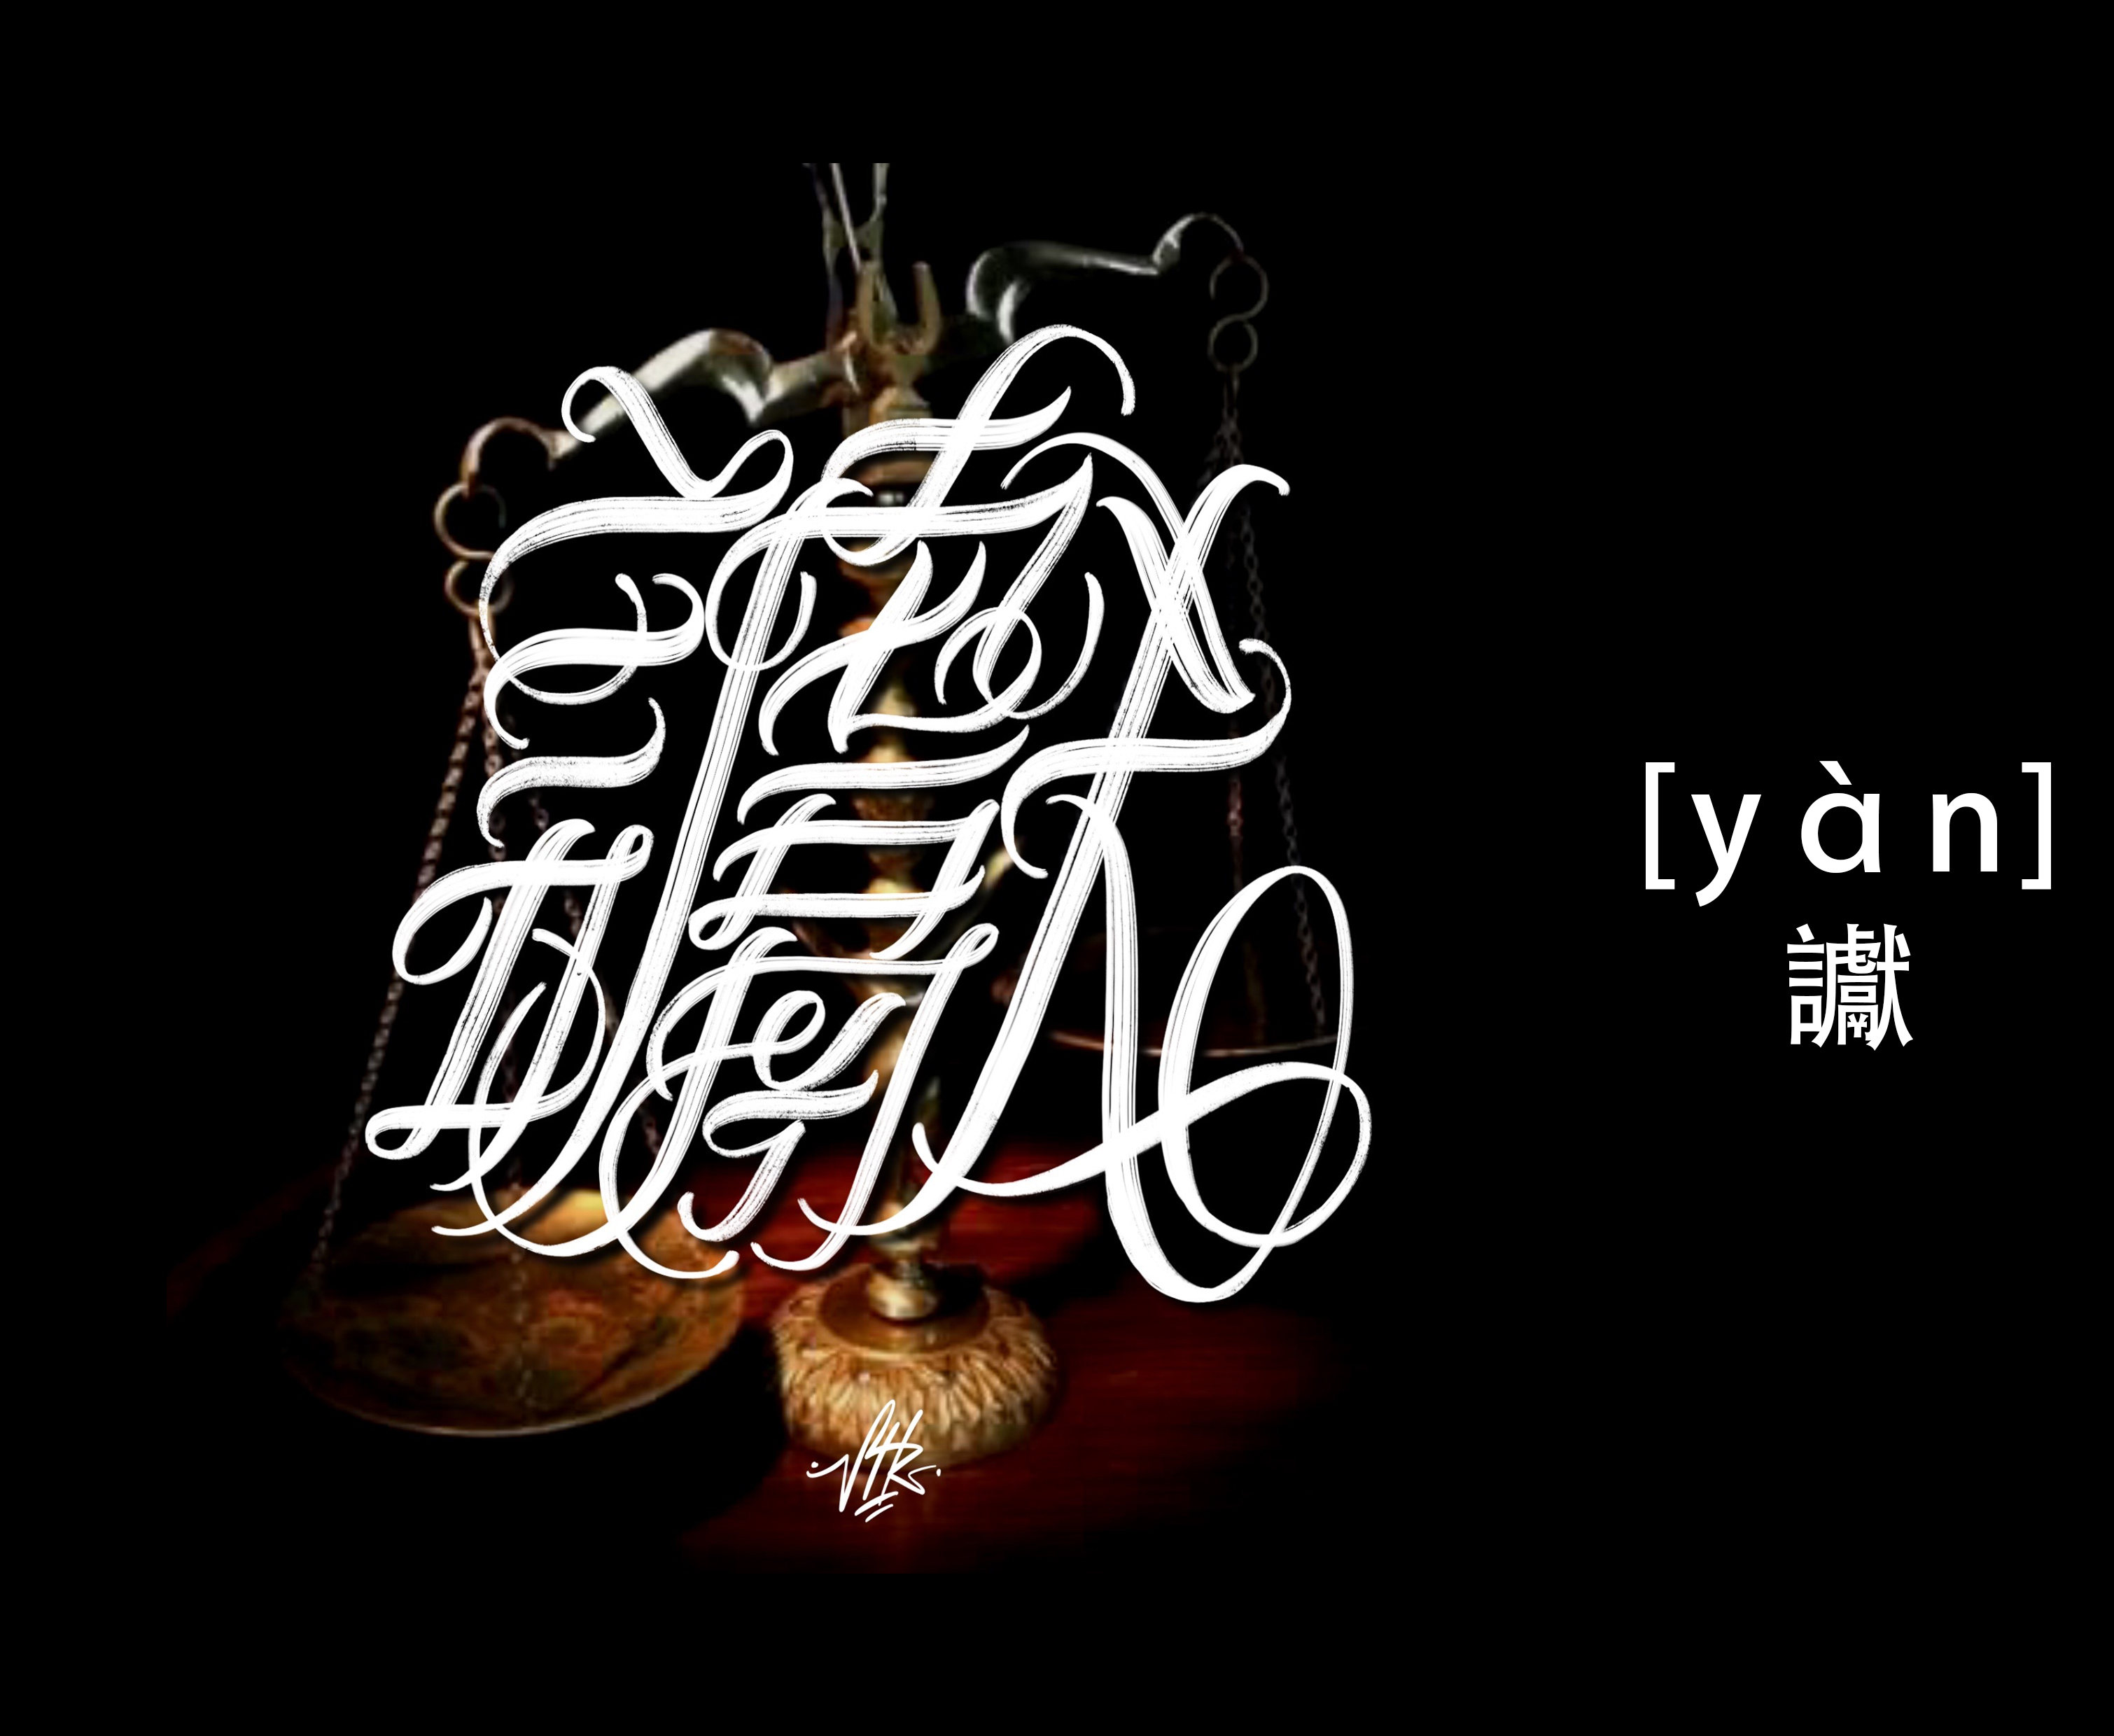 22P Chinese font design collection inspiration #.28